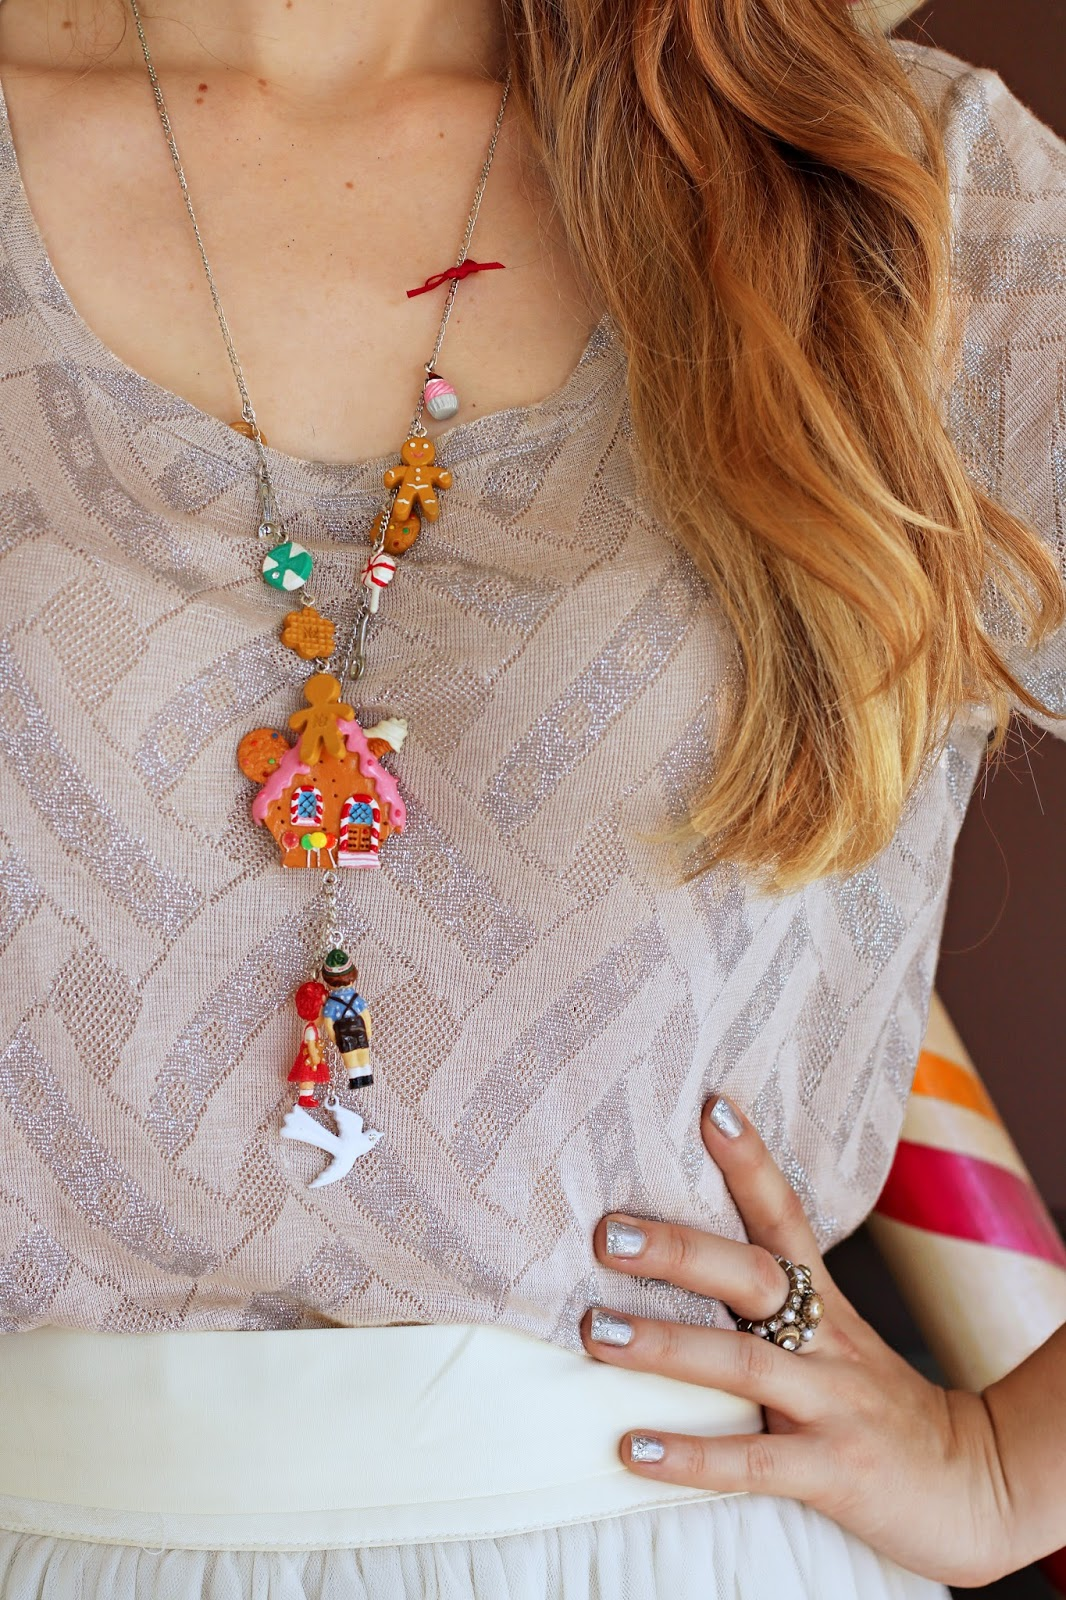 Adorable Hansel and Gretel inspired necklace!